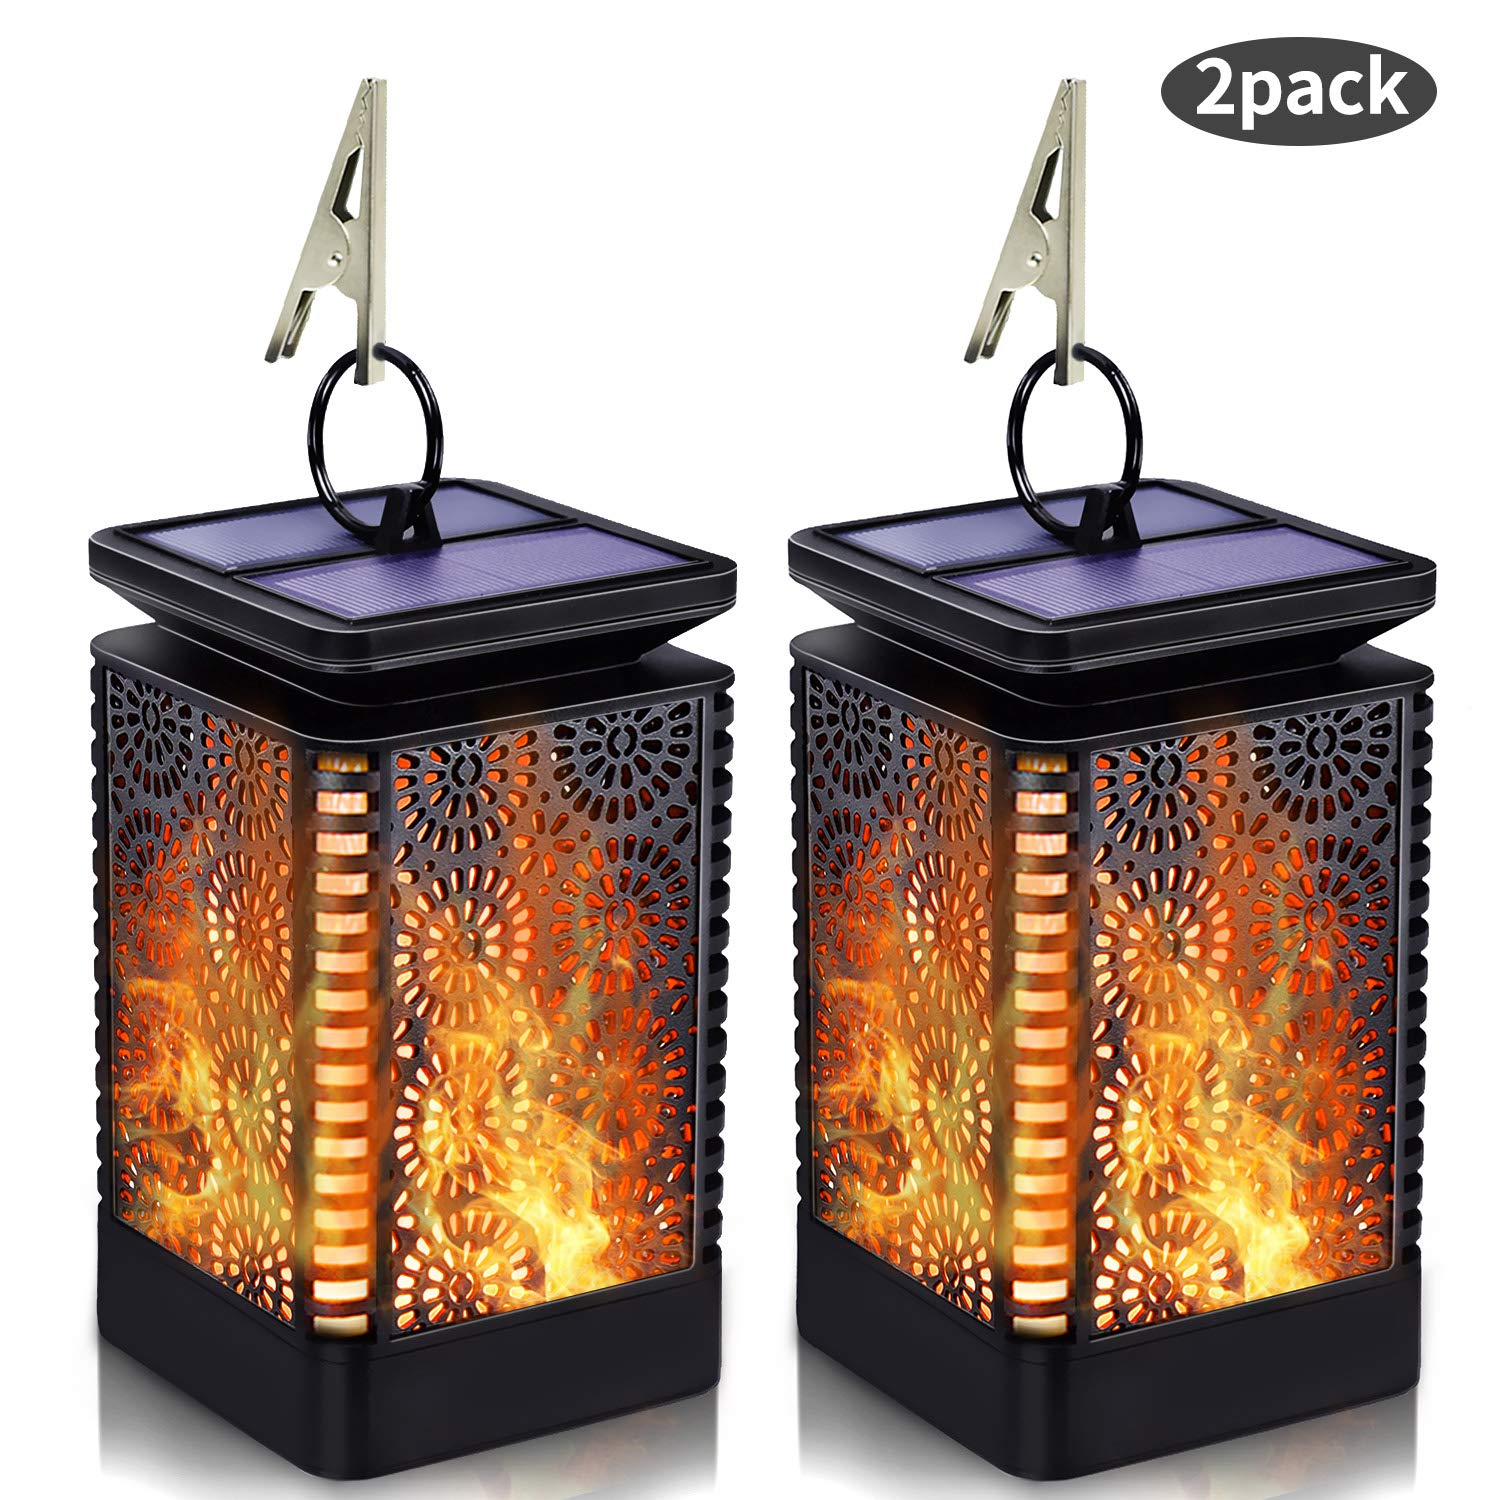 Solar Lantern Lights Outdoor Hanging with Flickering Dancing Flame, Waterproof Solar Powered LED Umbrella Lantern Lights Decoration for Patio Yard Garden Pathway Table, 2 Pack